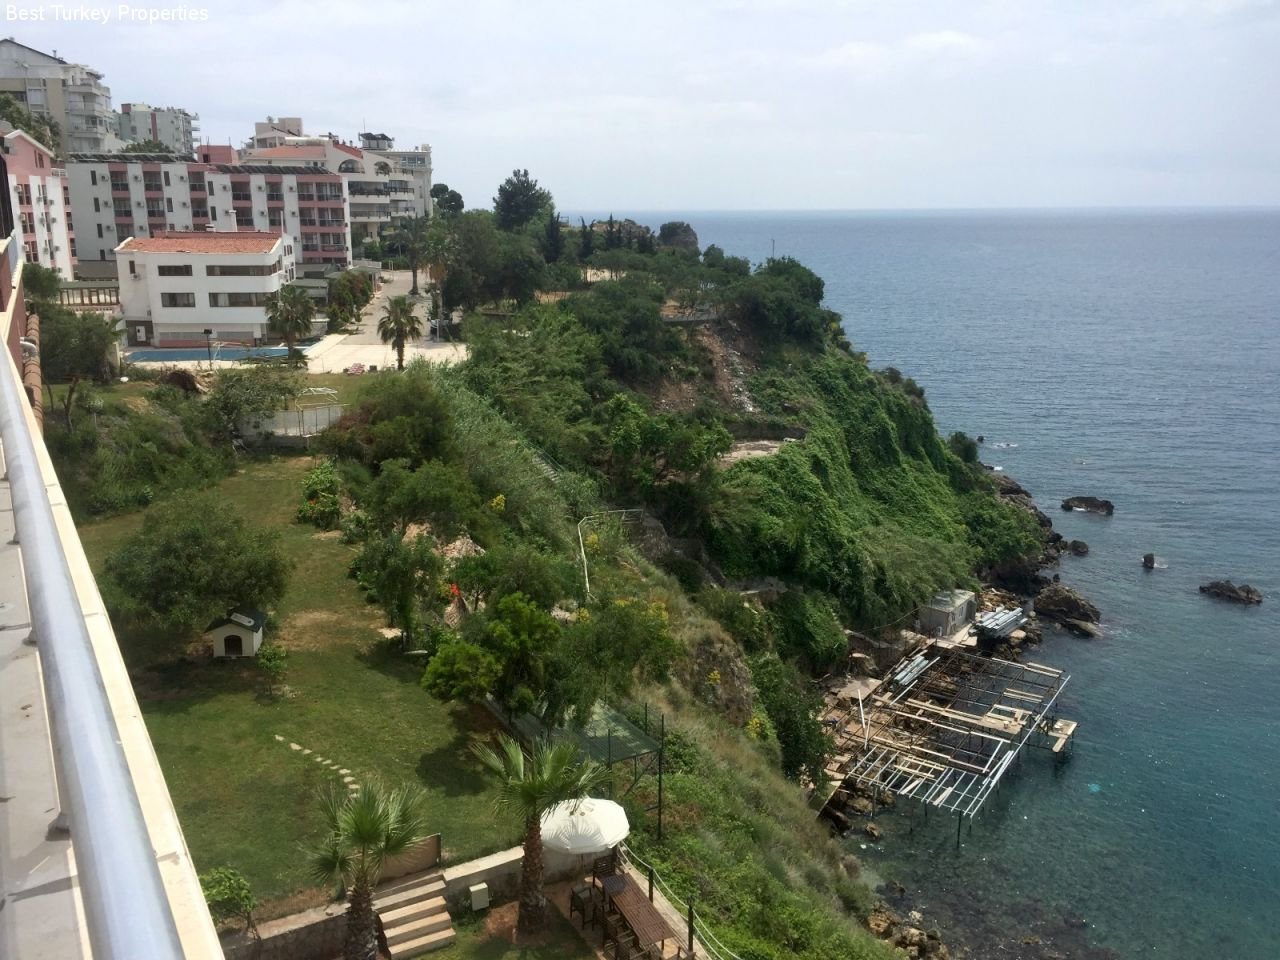 BEST TURKEY PROPERTIES | DUPLEX APARTMENT IN ANTALYA